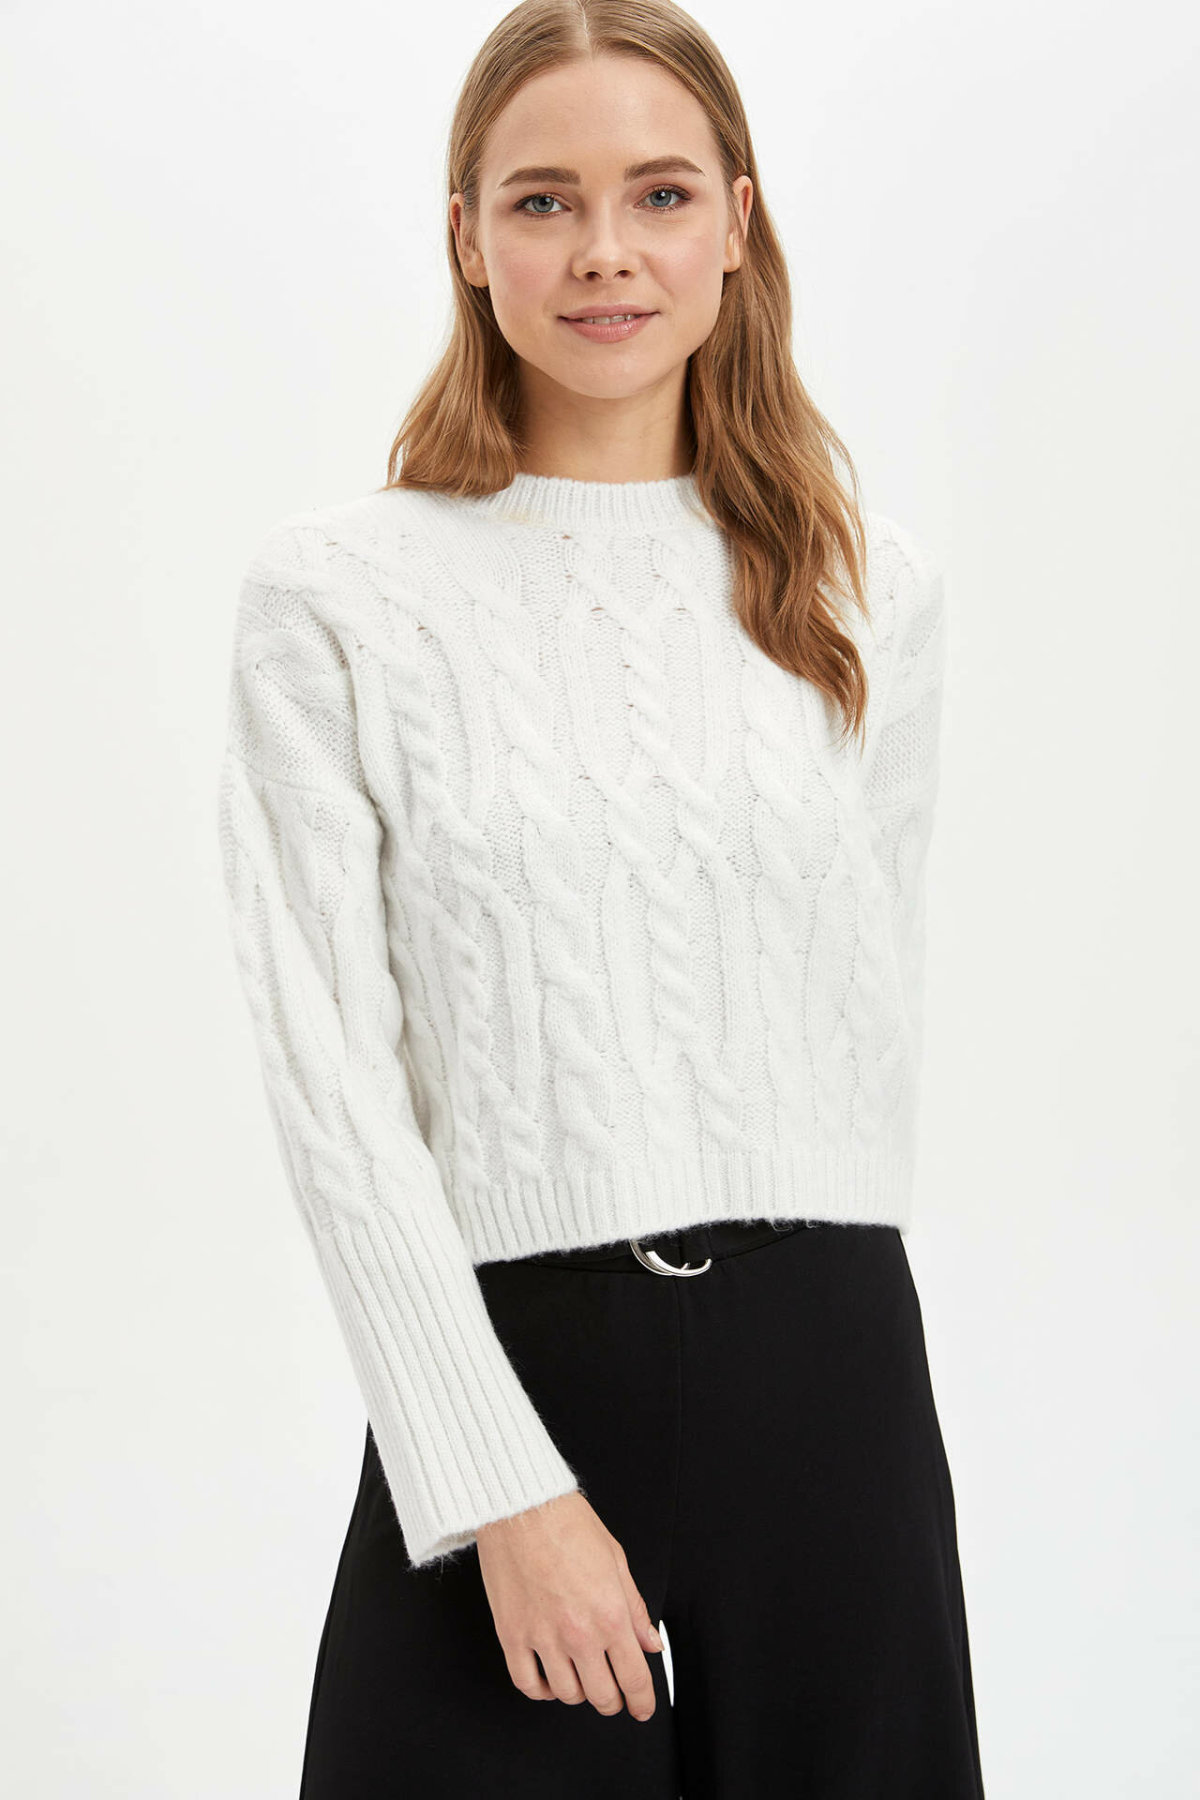 DeFacto Woman Winter White Knitted Pullovers Women Casual Warm Pullovers Female O-neck Tops Pullover-L9455AZ19WN